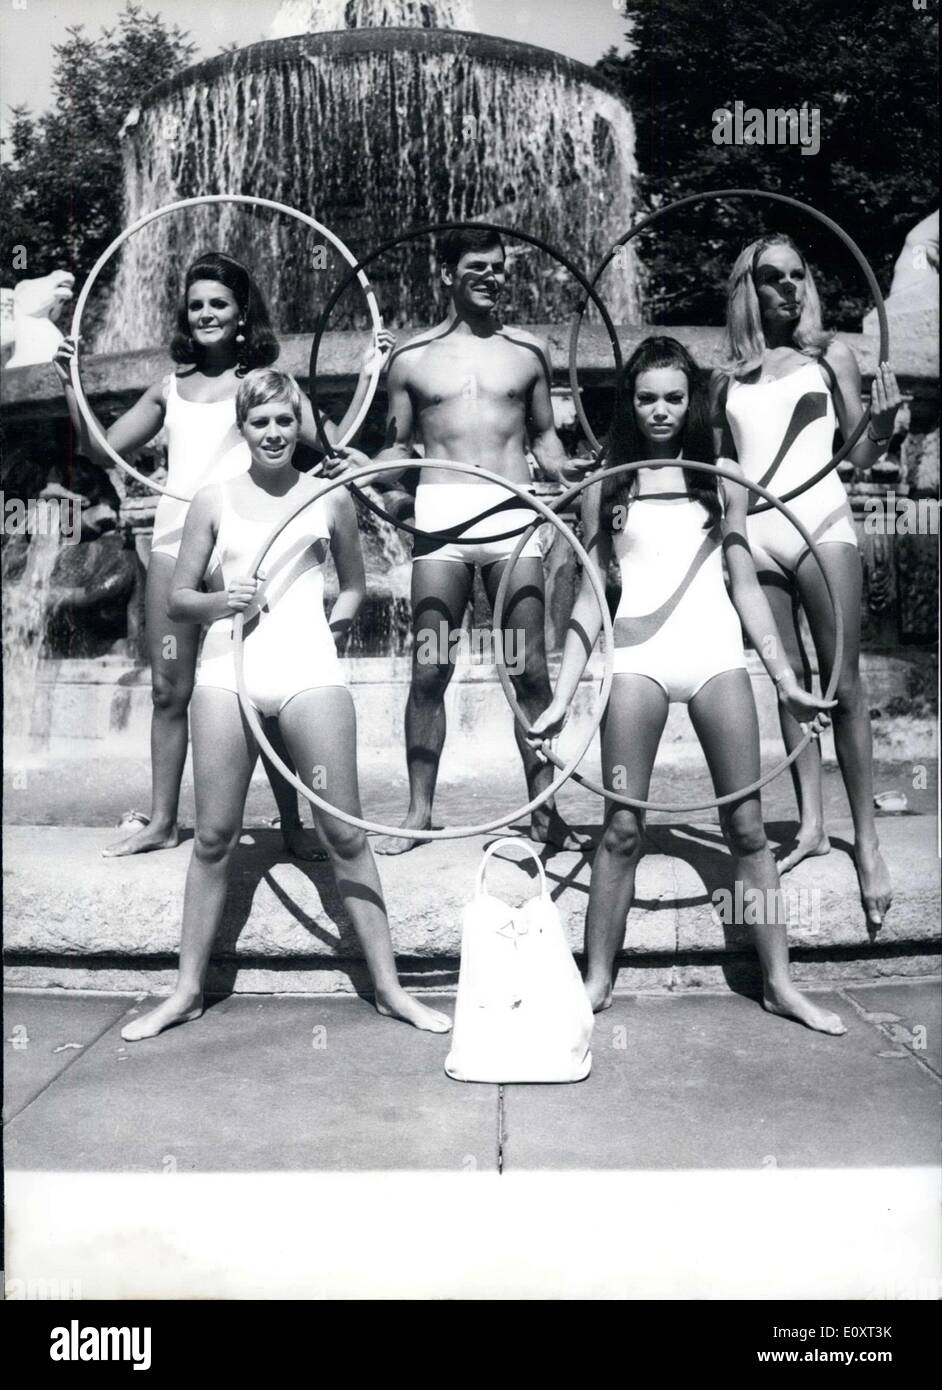 Sep. 05, 1967 - These models are showing off bathing suits for the1968 bathing season. The suits were made in Munich's ''Kuenstlerhaus.'' This picture shows the bathing suit mockup entitled ''Olympia,'' which was made for the Mexico Olympic games. - Stock Image